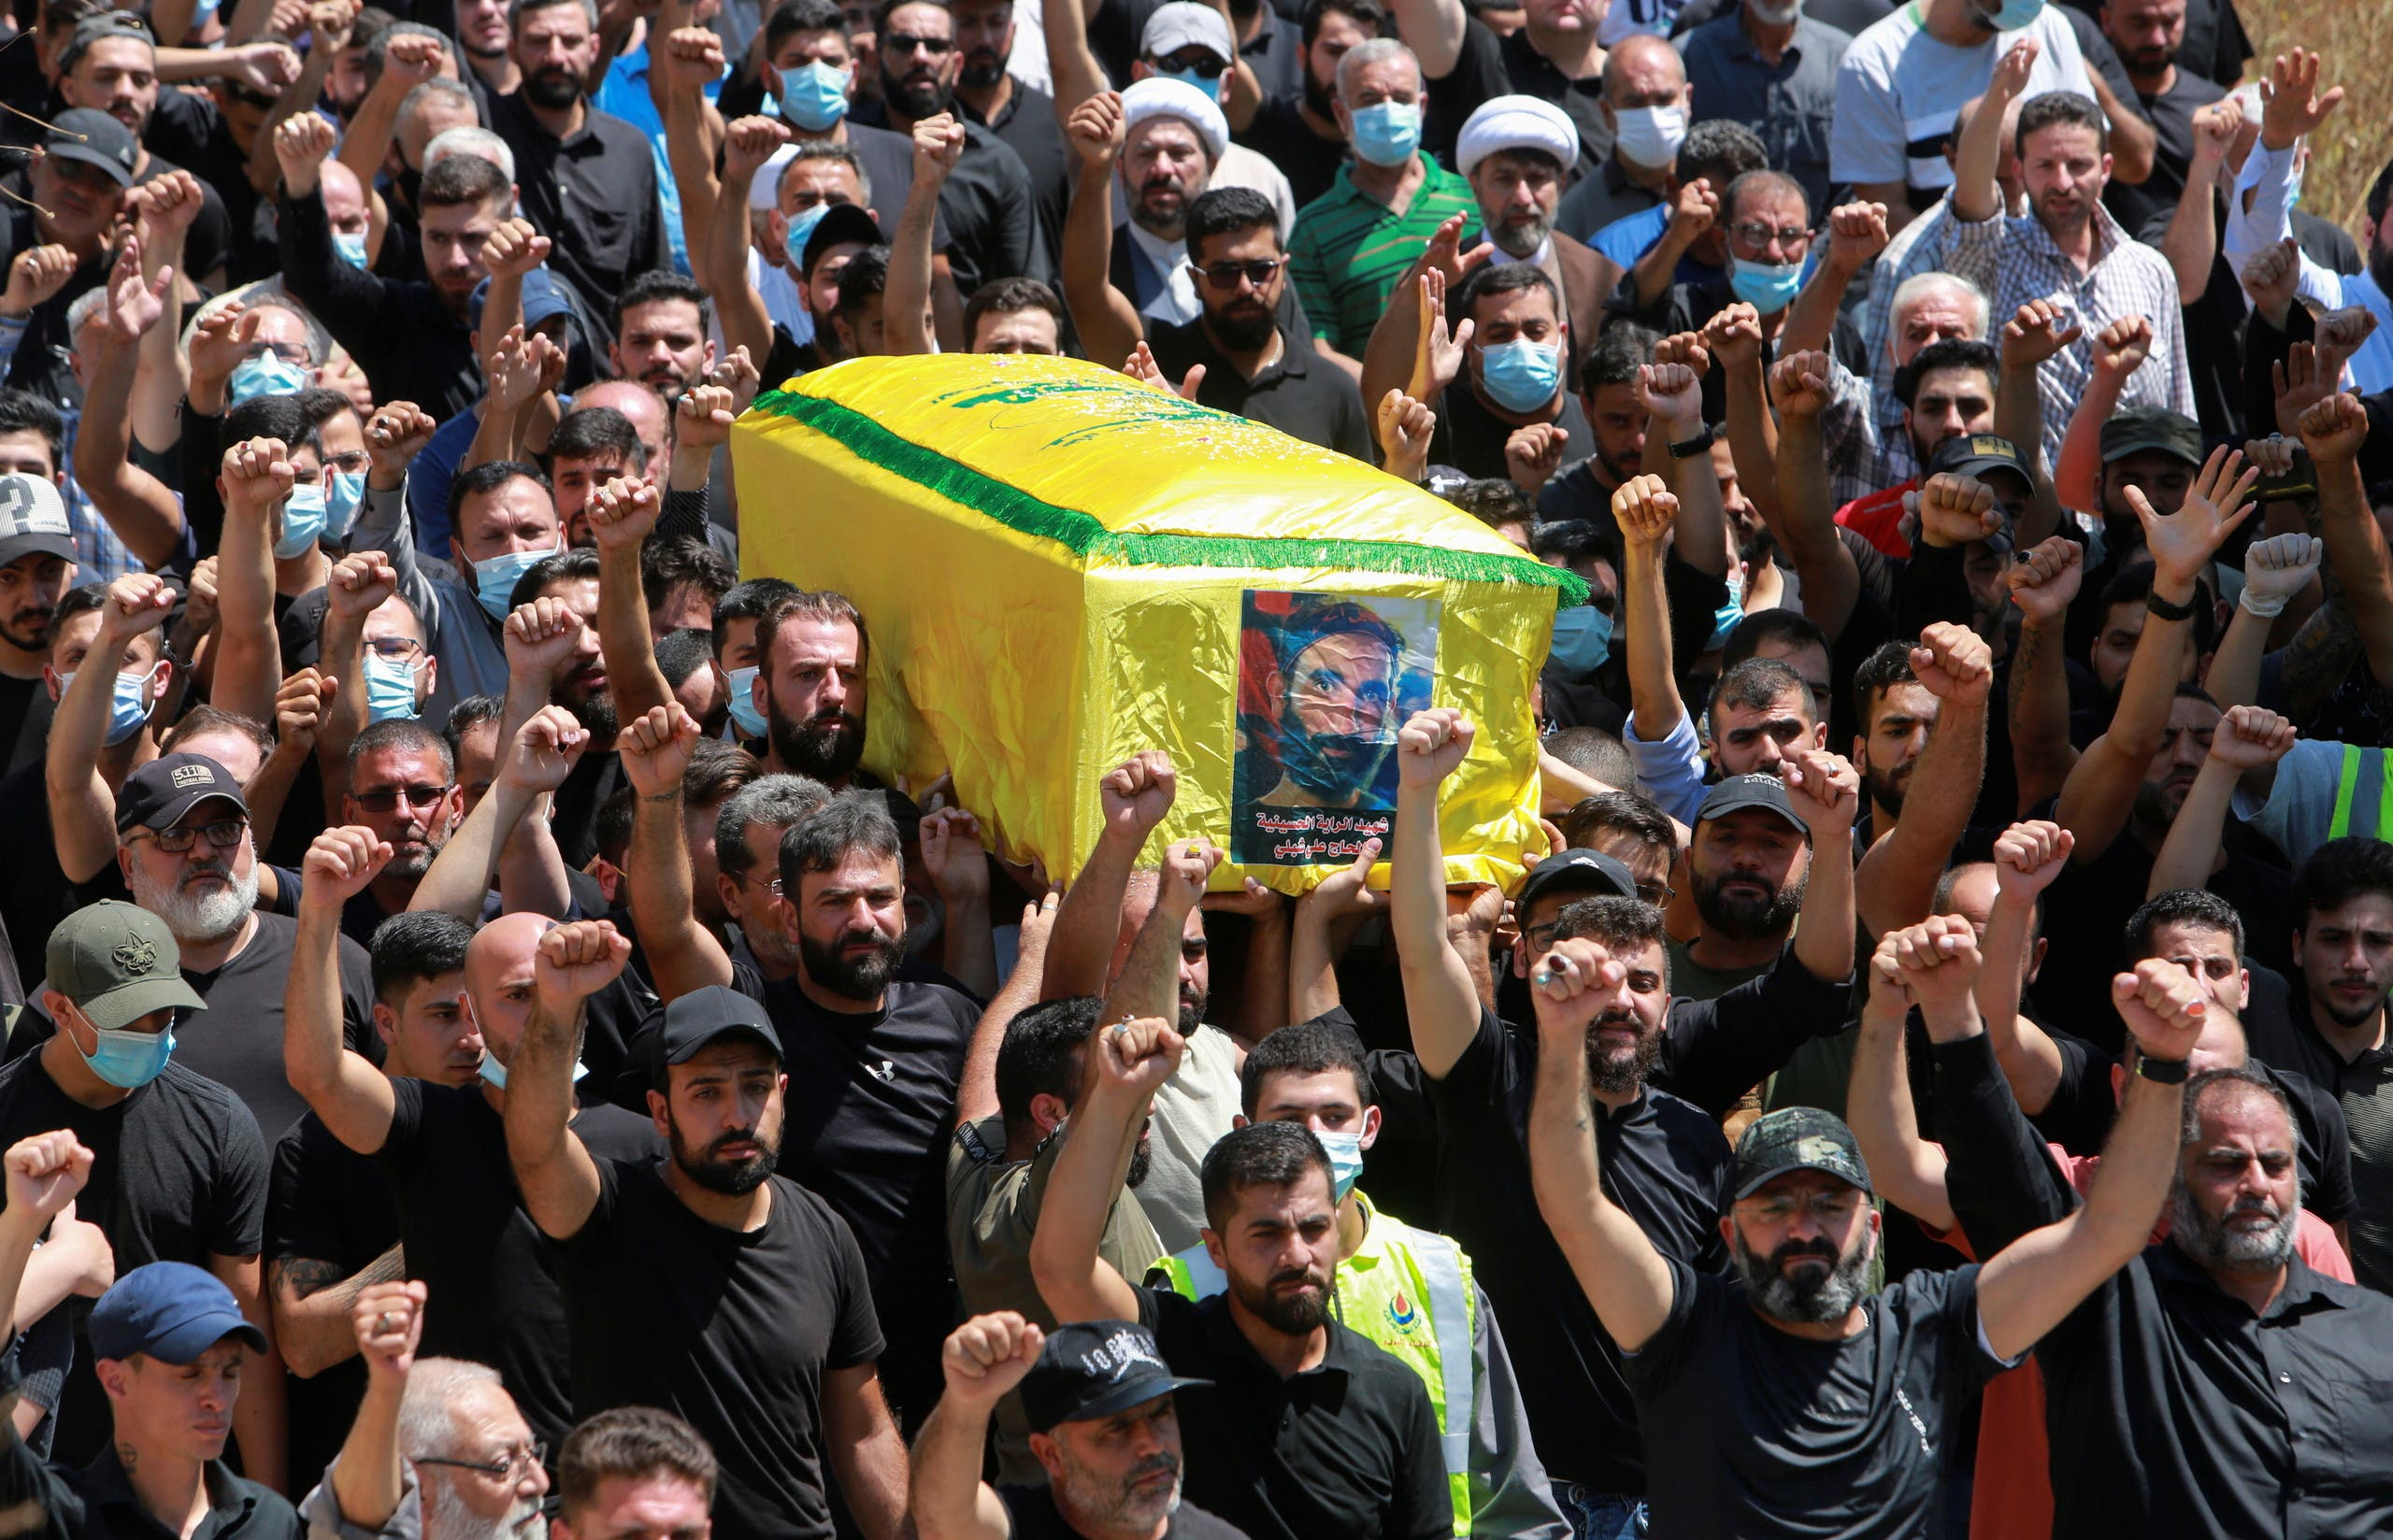 Mourners carry the coffin of Hezbollah member Ali Shibli, who was killed on Saturday, during his funeral in the village of Kunin, southern Lebanon August 2, 2021. (Reuters)